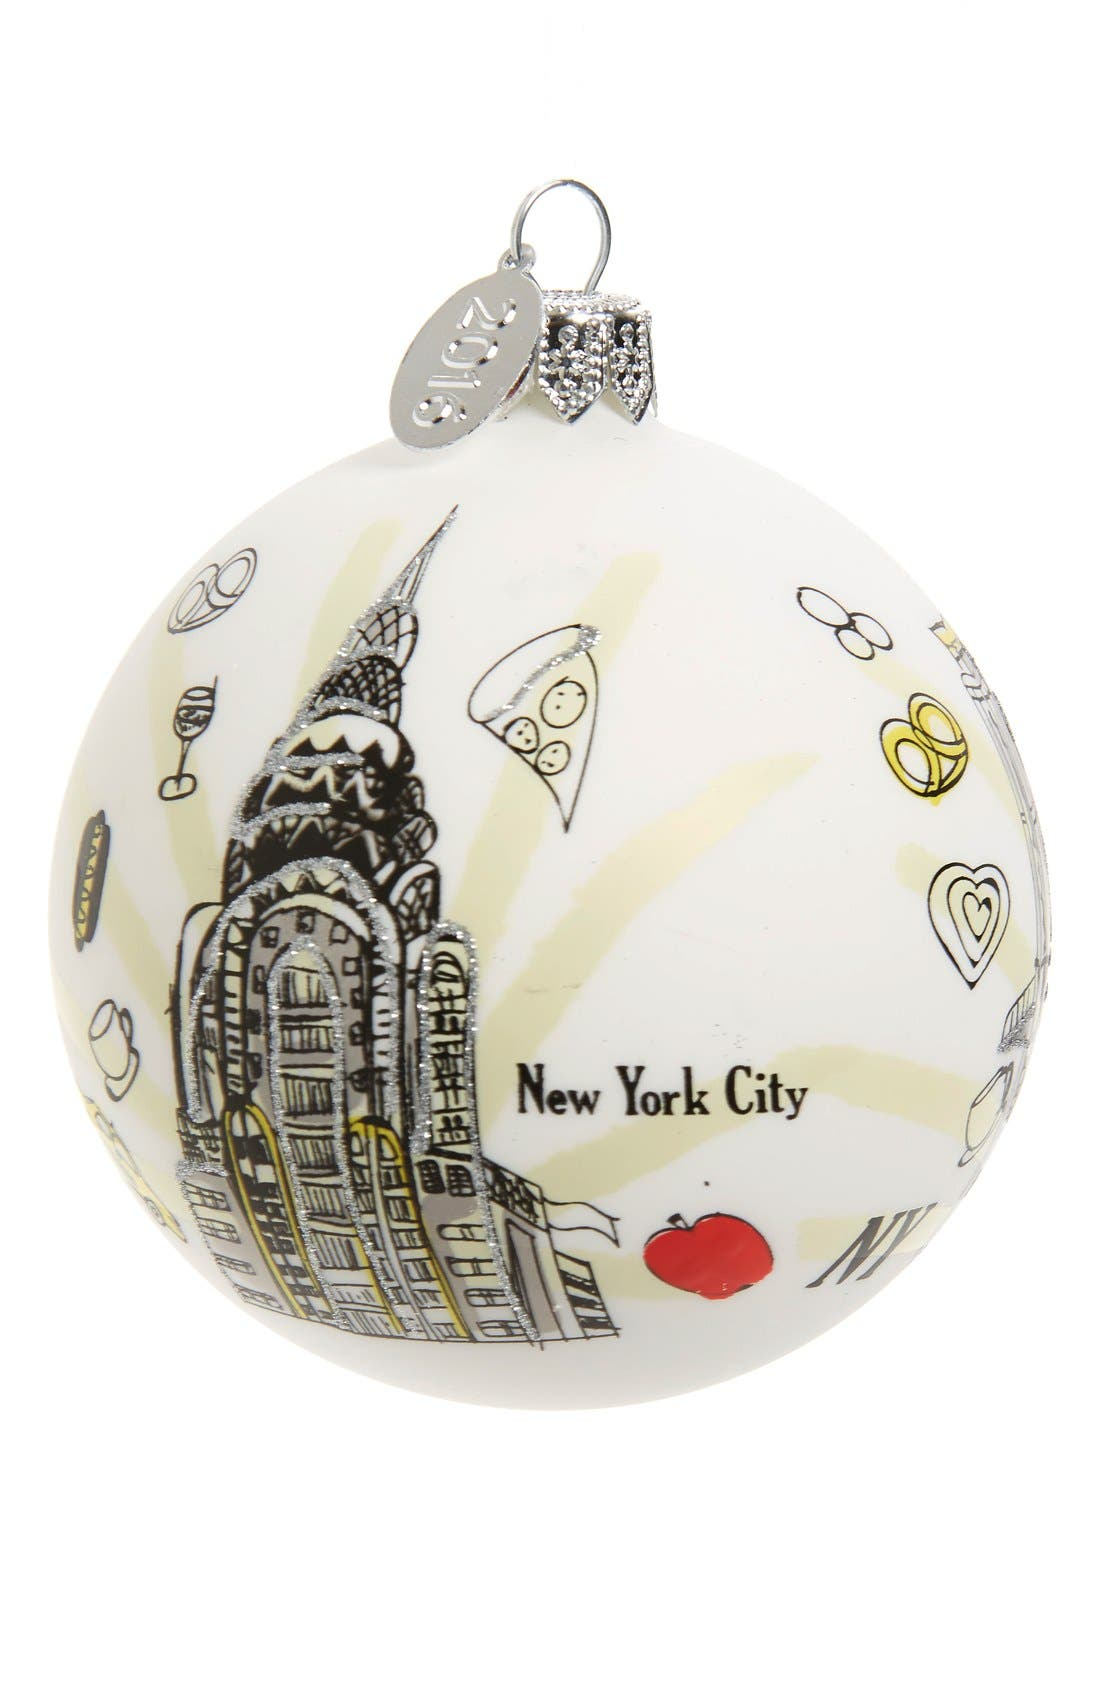 'Travel' Handblown Glass Ball Ornament,                             Main thumbnail 1, color,                             WHITE NEW YORK CITY